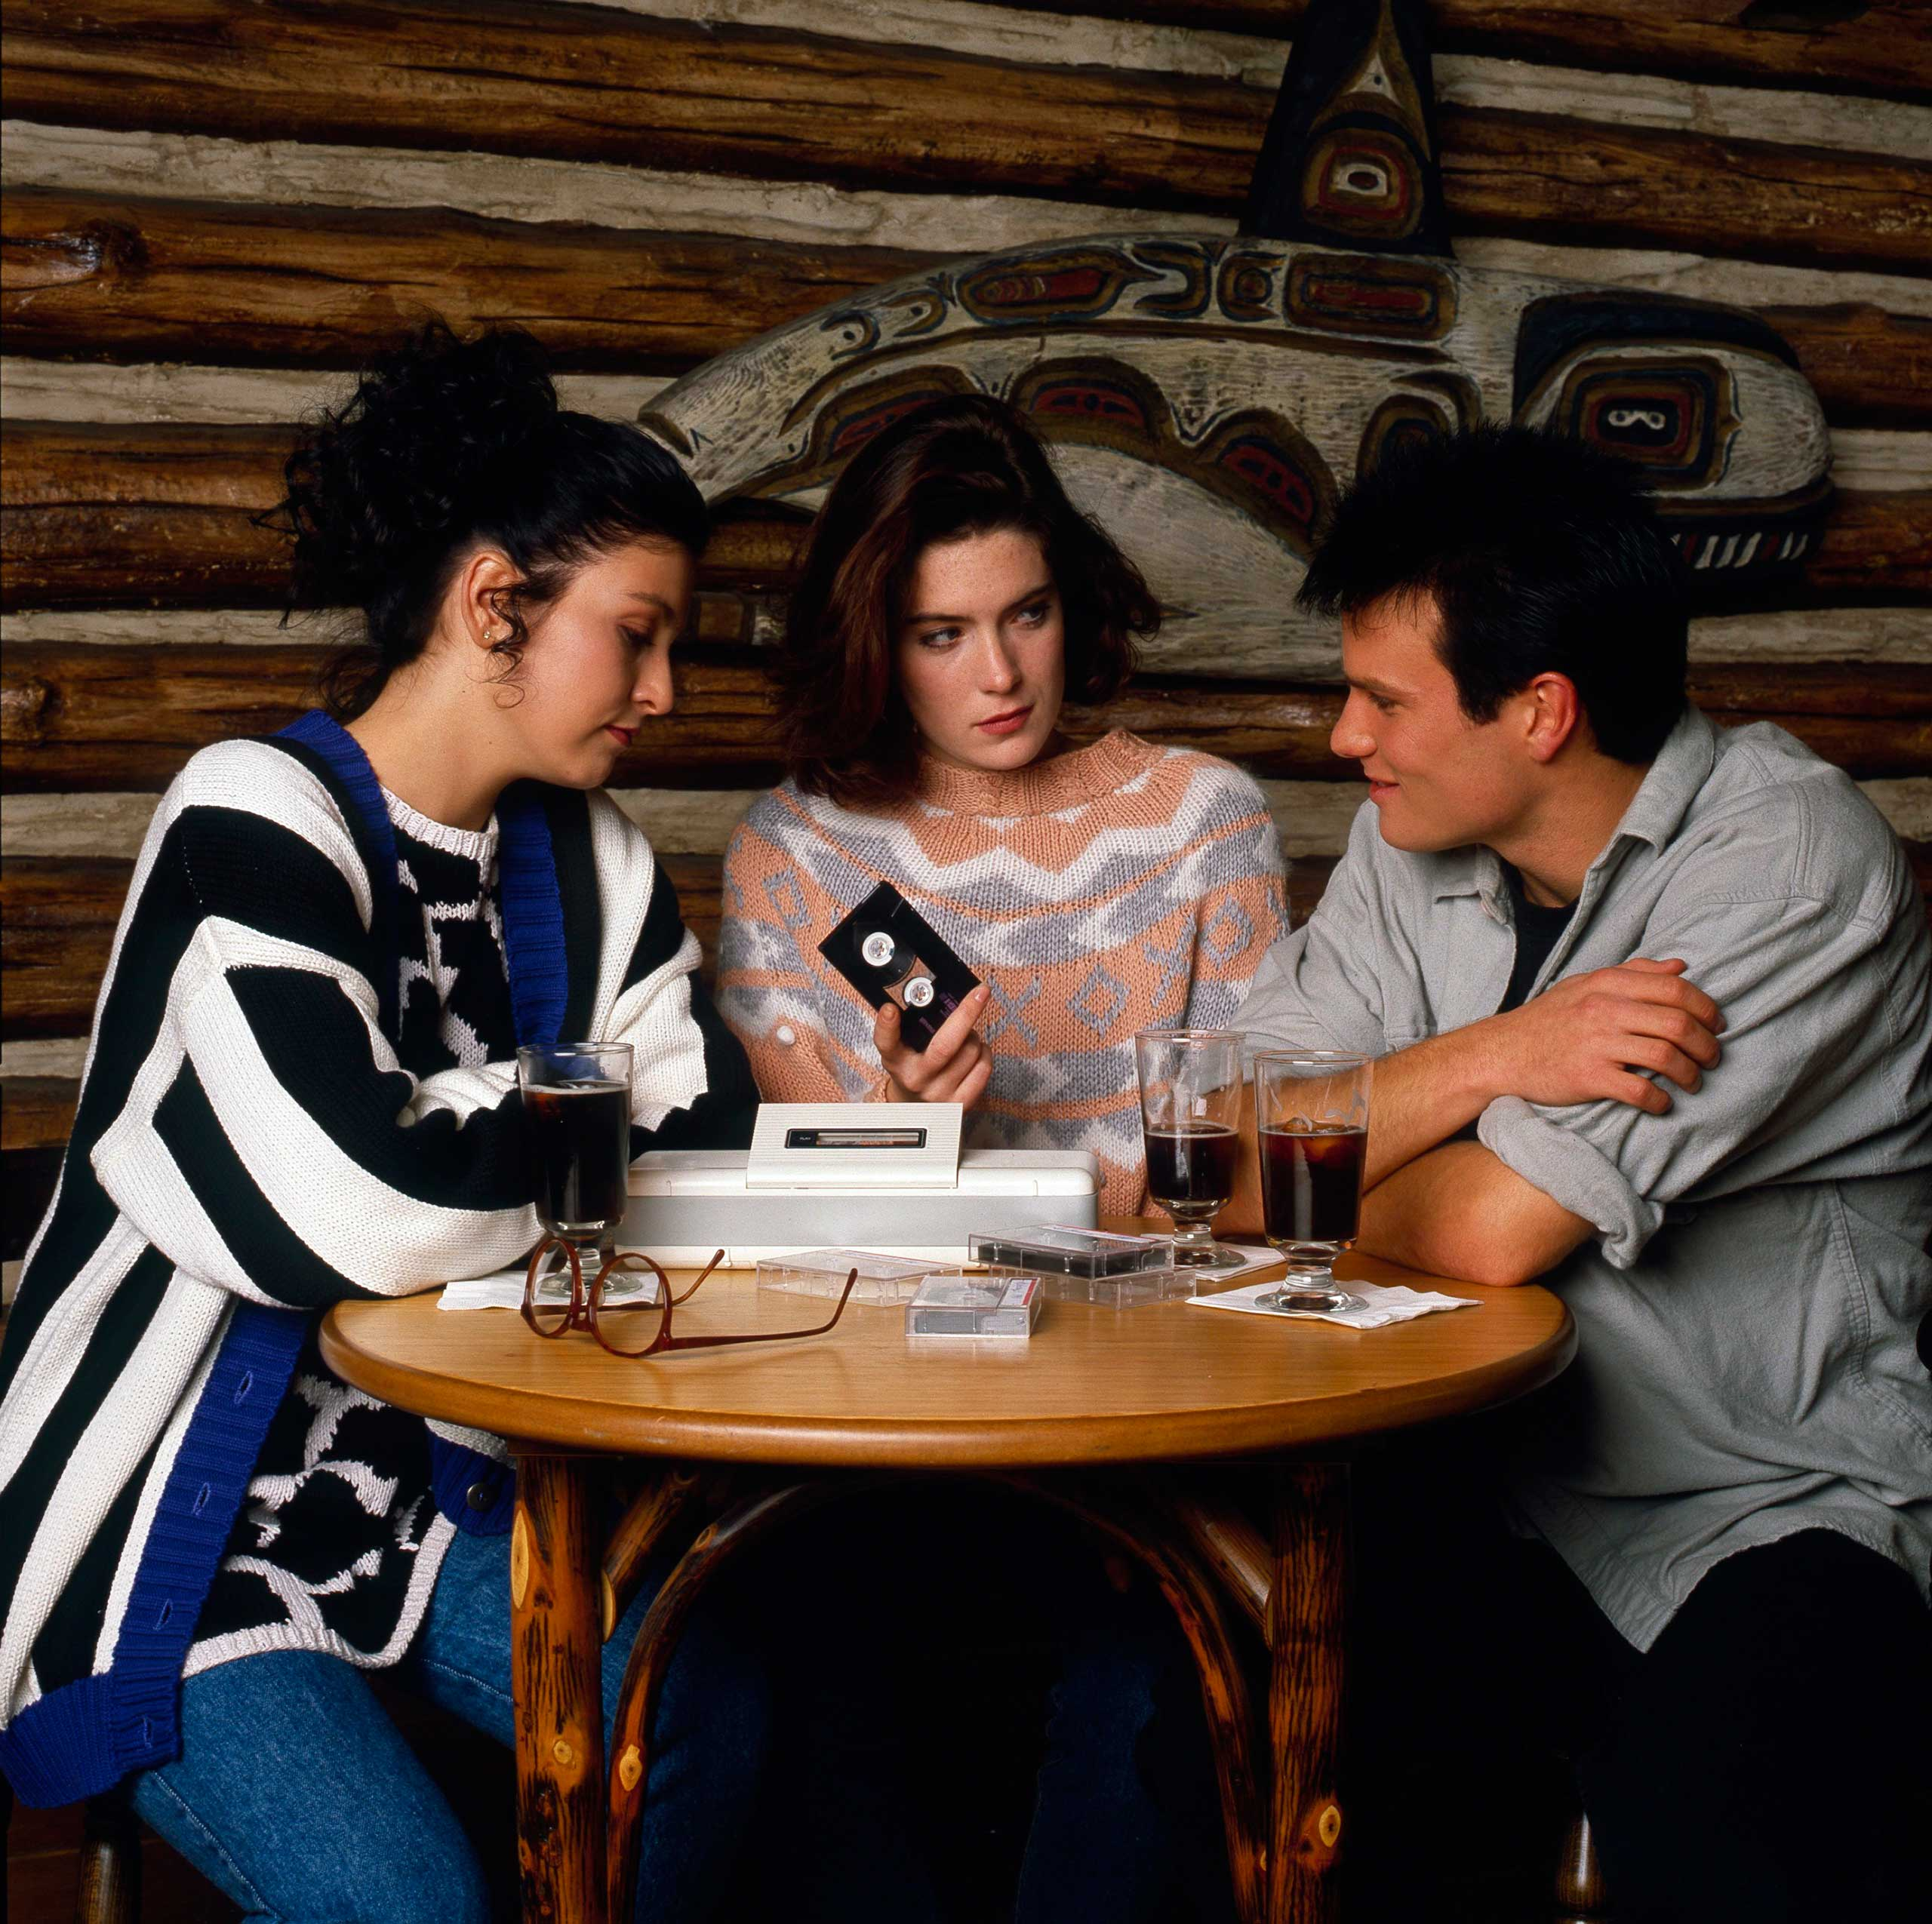 Sheryl Lee, Lara Flynn Boyle, James Marshall, 1989.